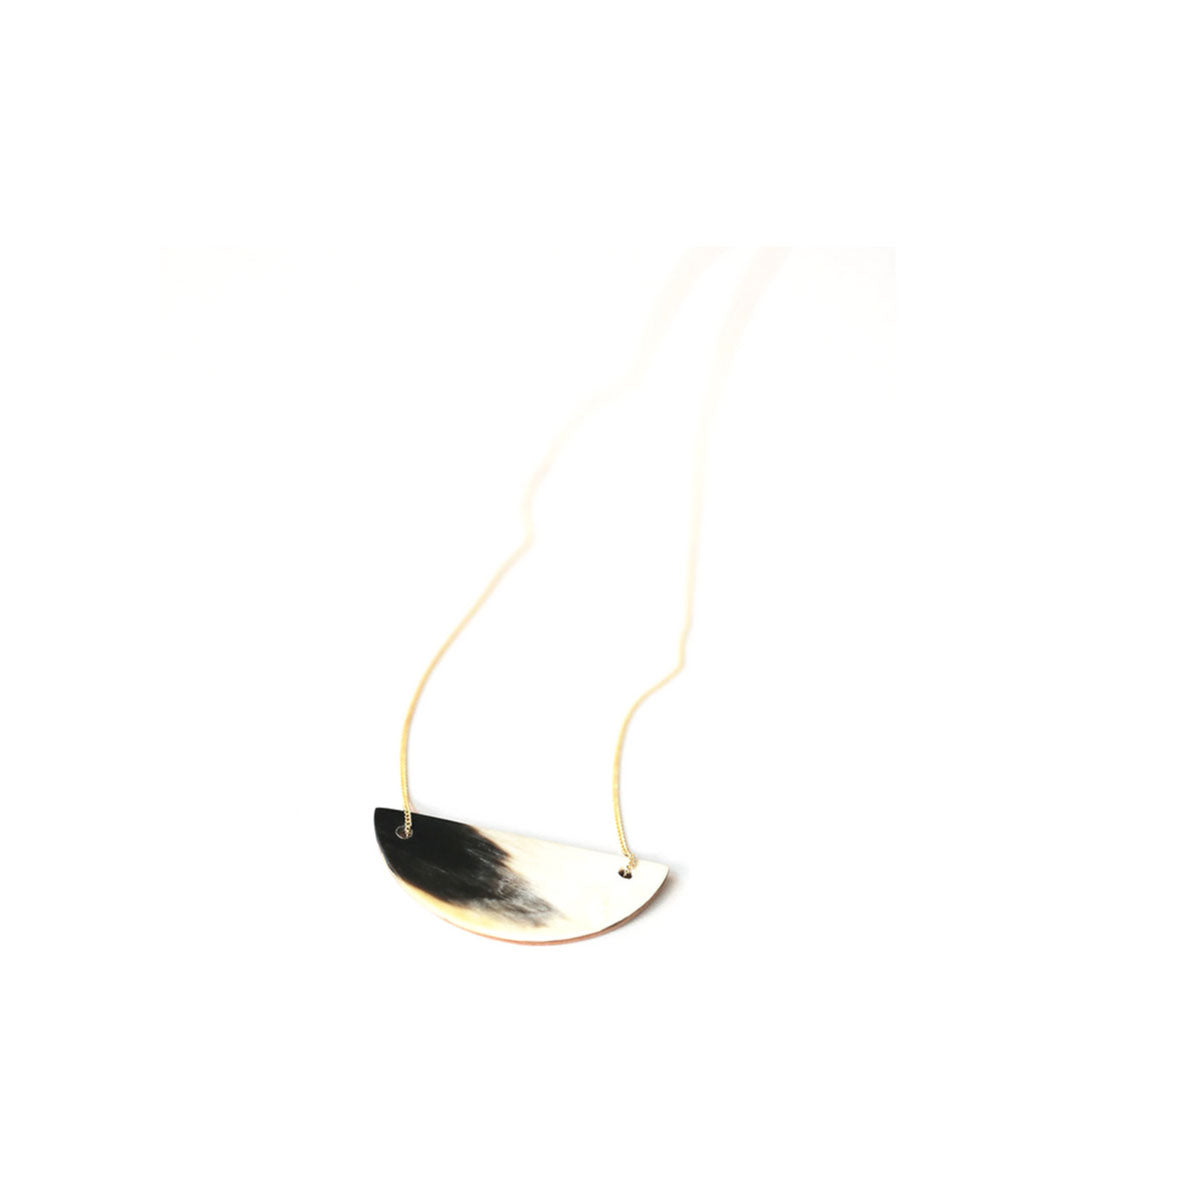 cow and goat horn necklace with gold chain